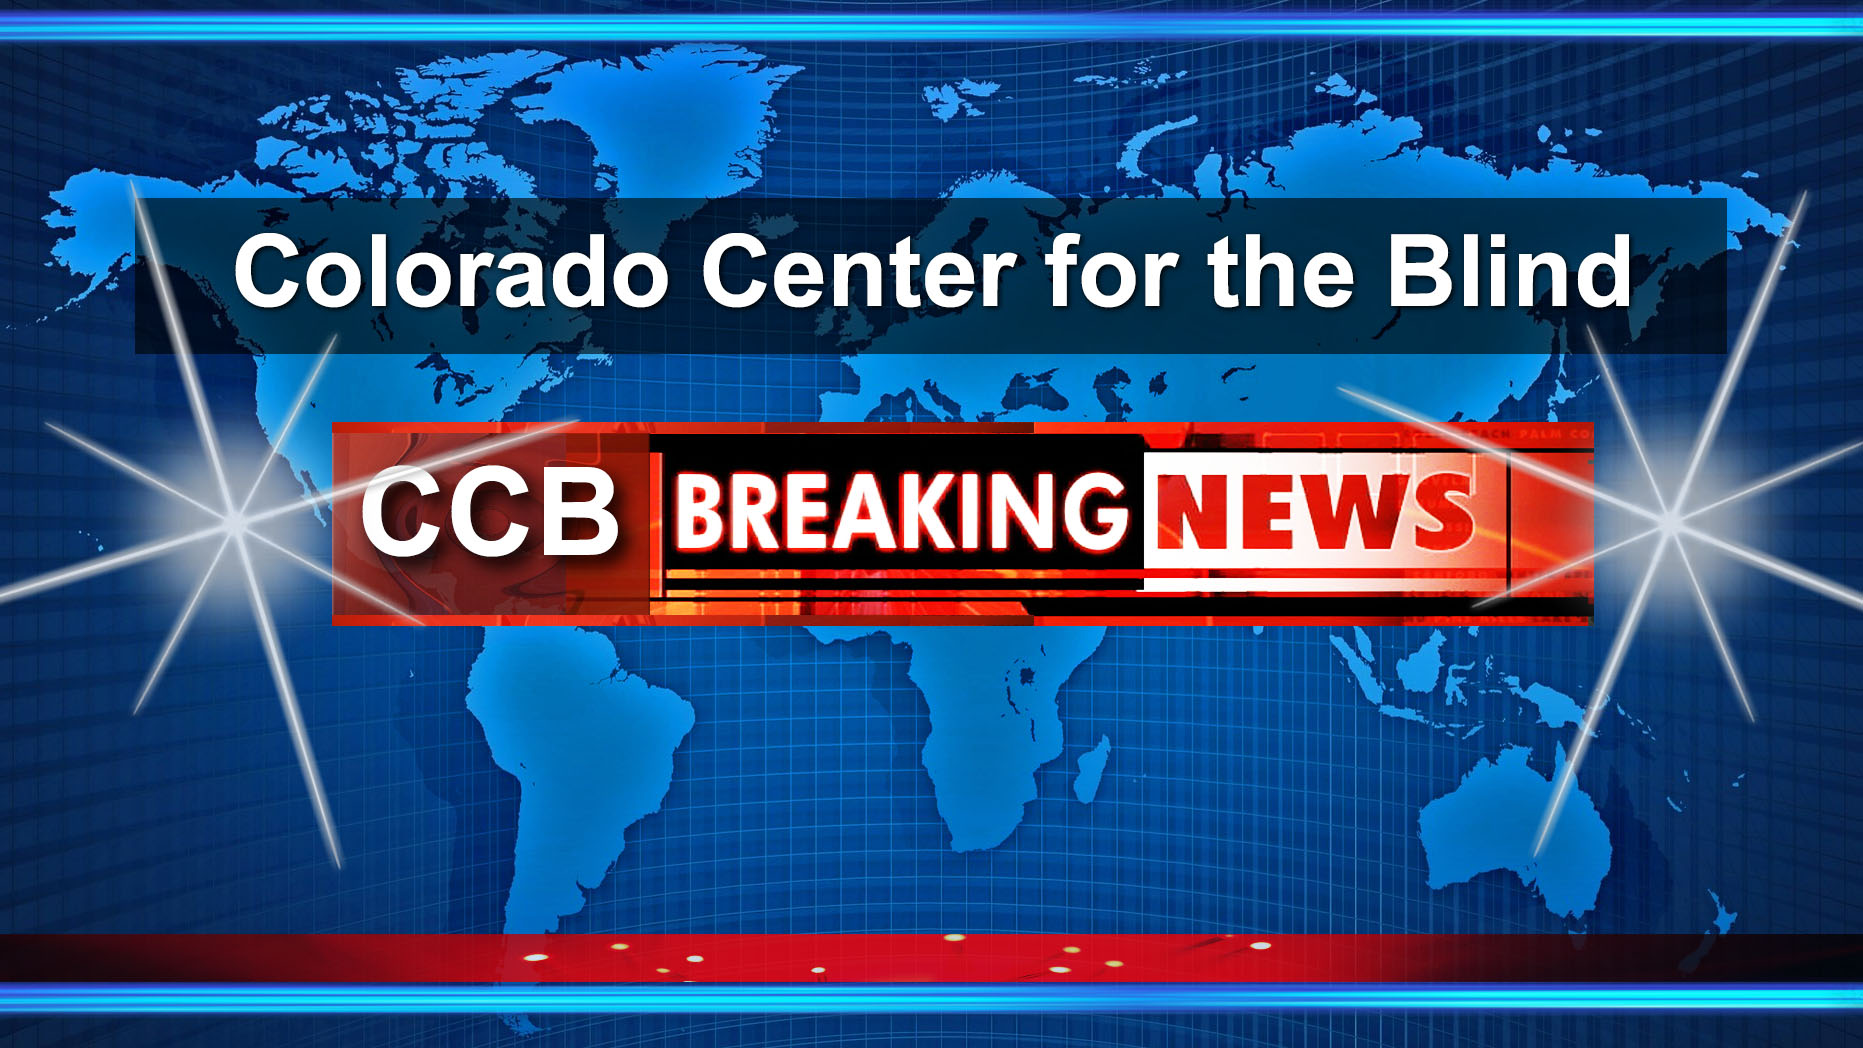 Colorado Center for the Blind - CCB Breaking News